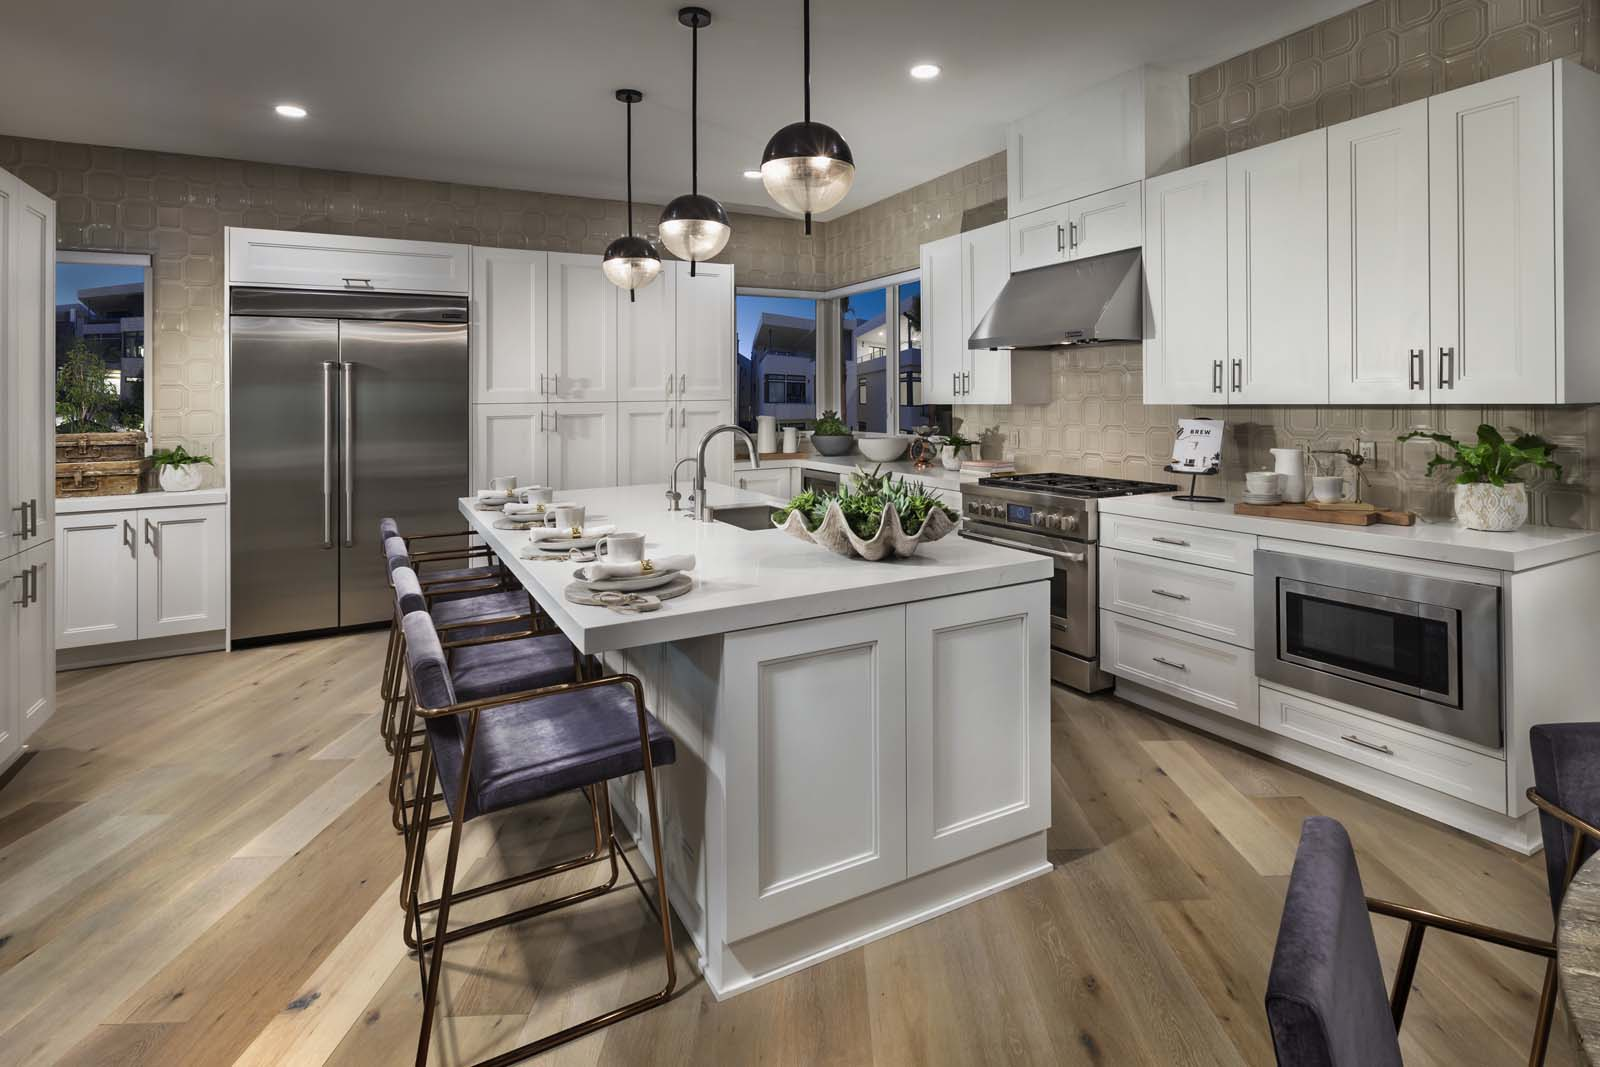 Homes For Sale In Los Angeles The Collection Aluminum Wiring California Kitchen At Playa Vista Ca Brookfield Residential